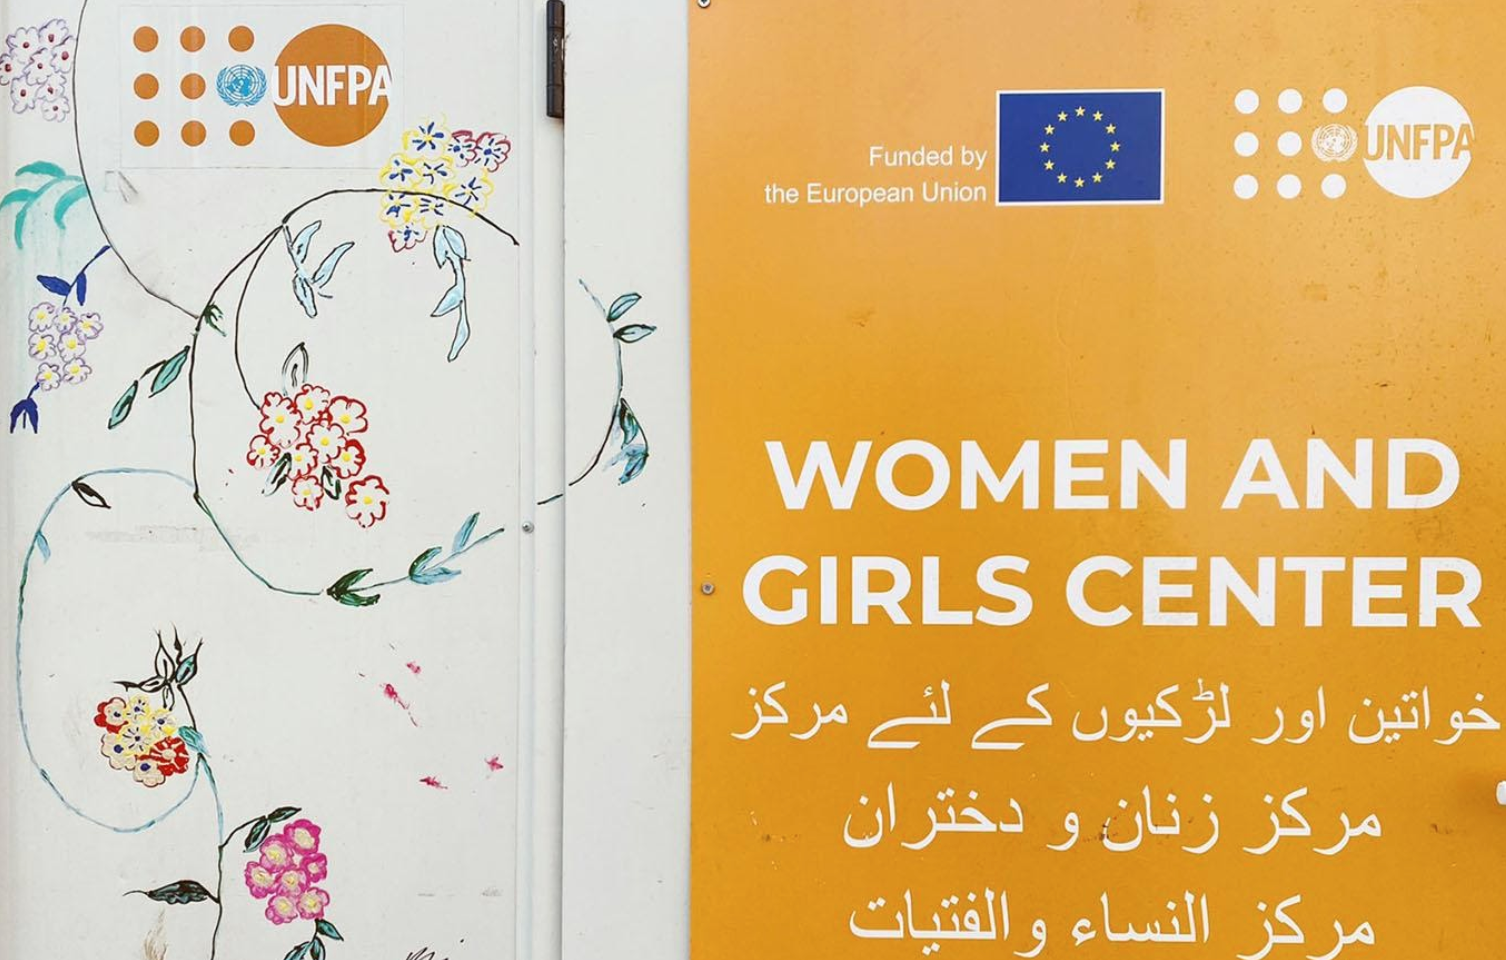 Sign for a UNFPA Women and Girl's Center